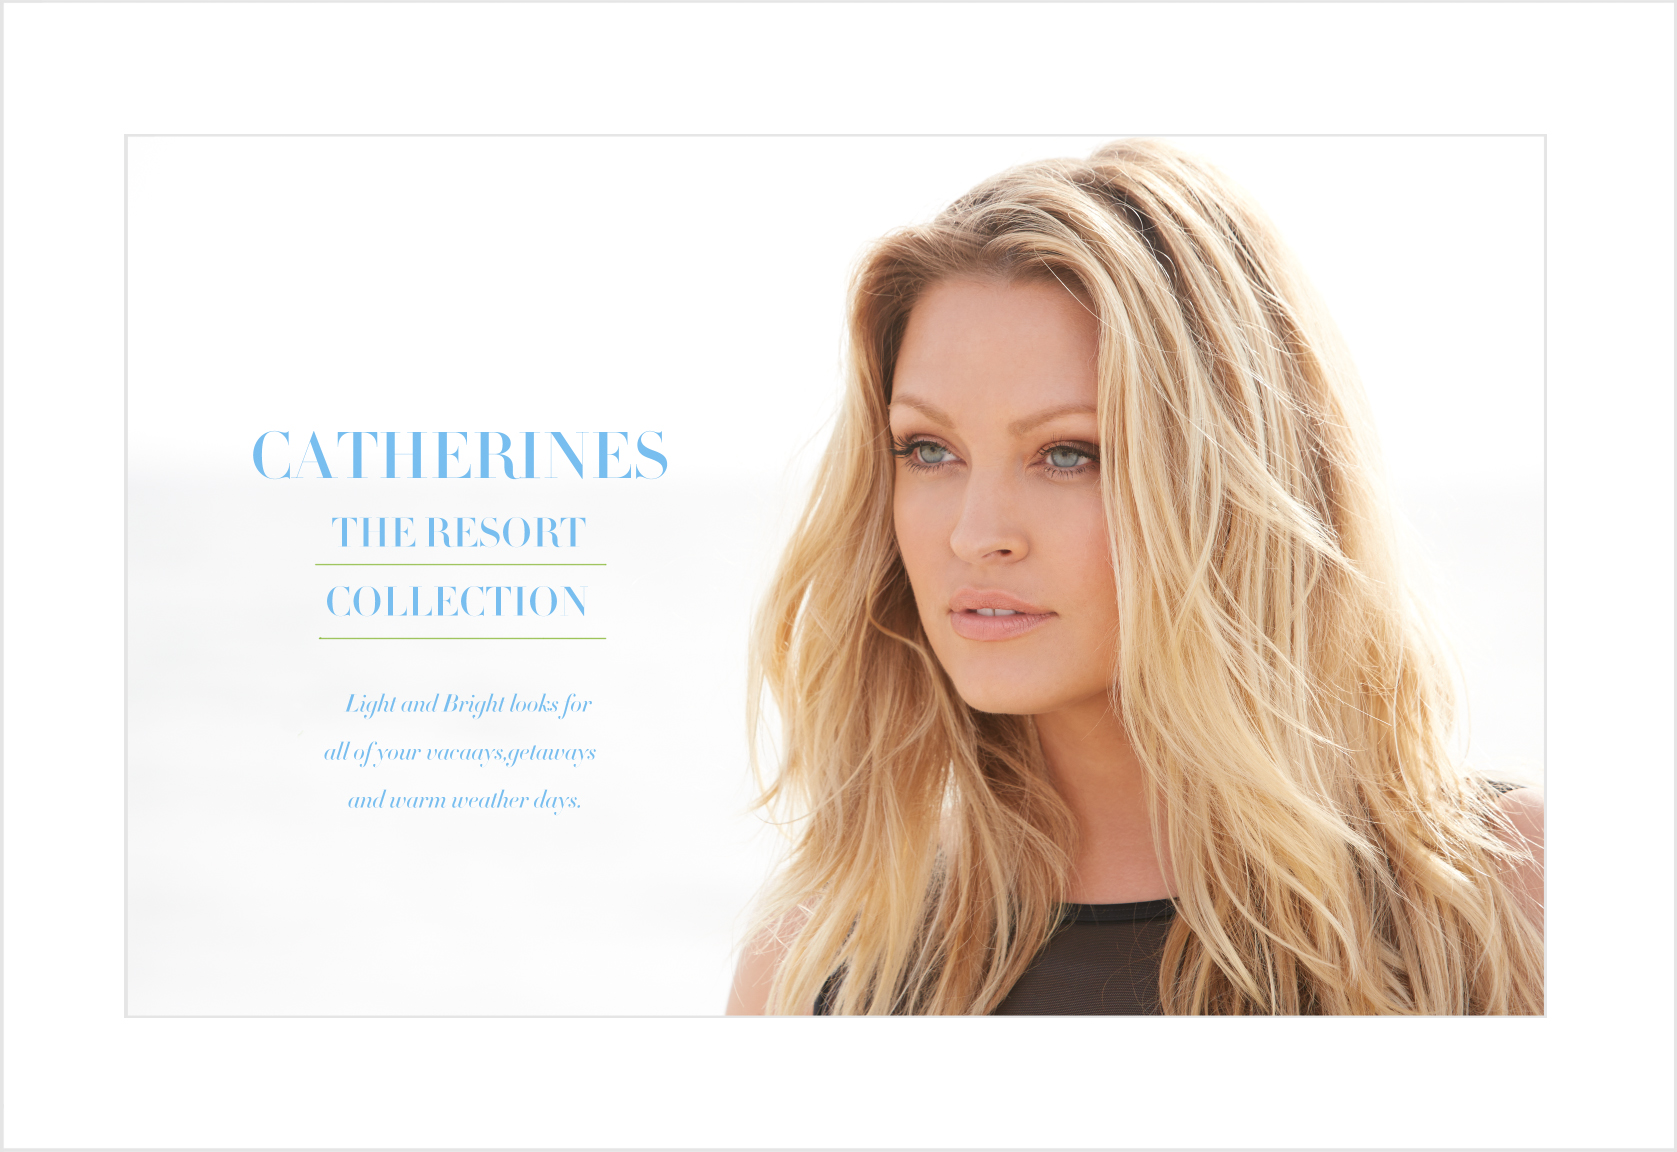 Catherines-Resort-_1A-